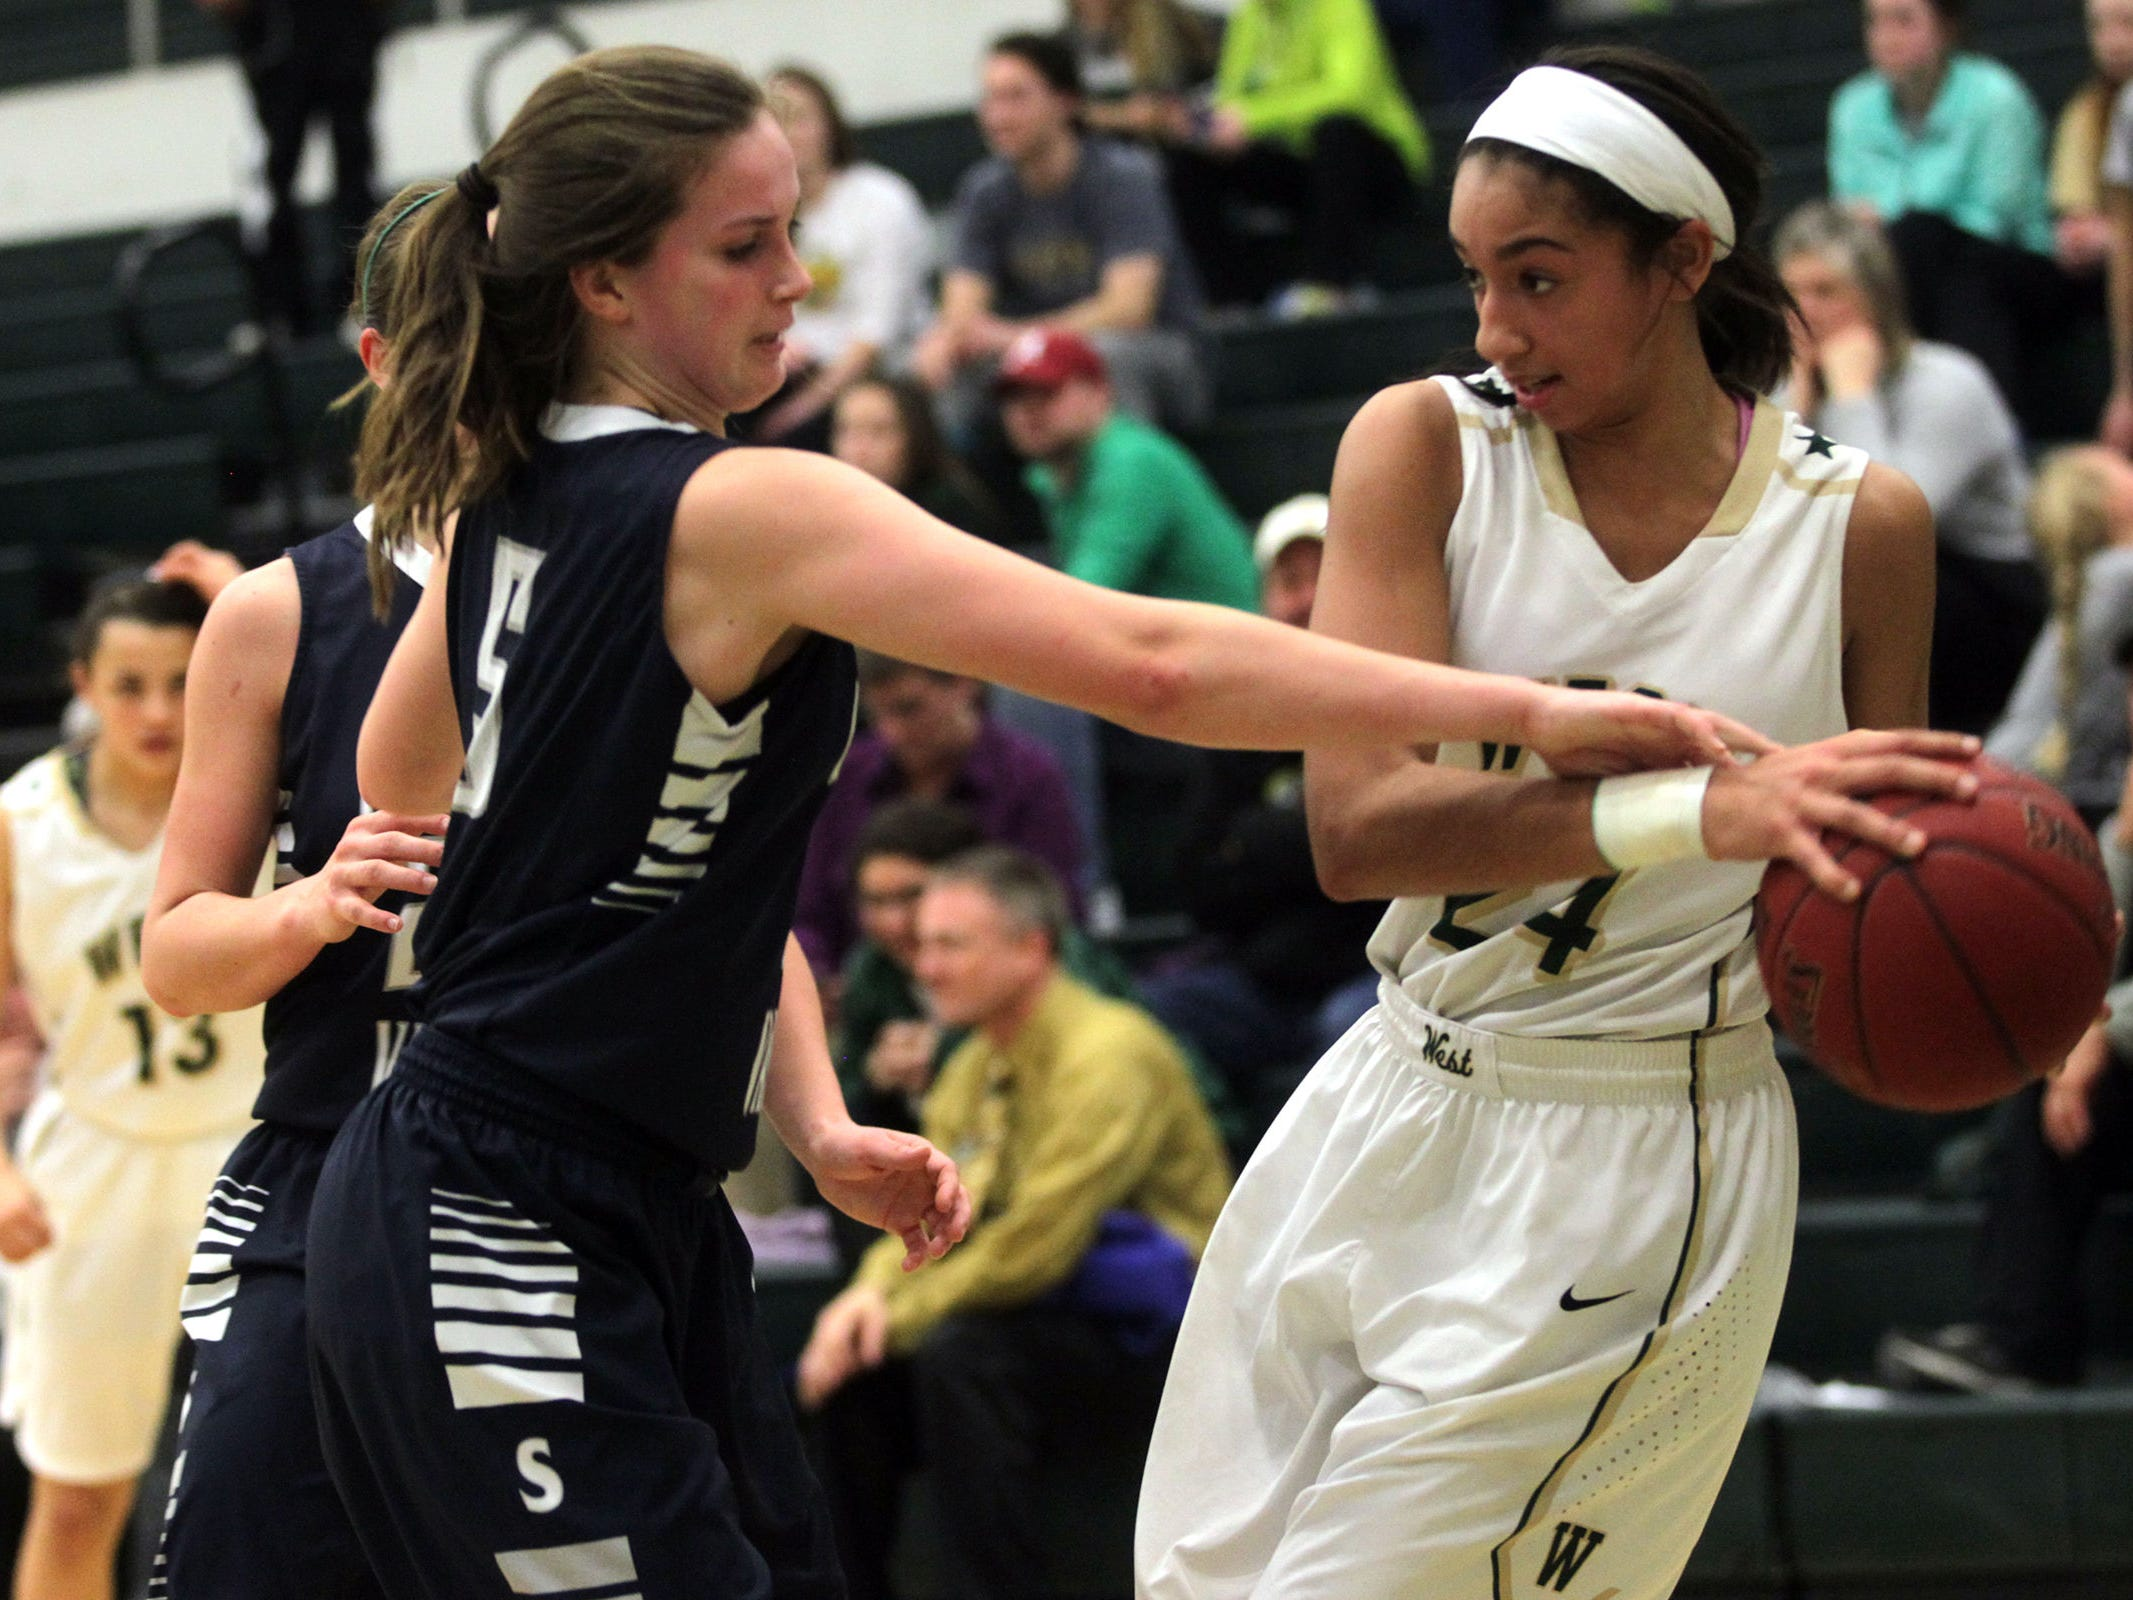 West High's Mikaela Morgan guards the ball from Pleasant Valley's Rory Donahue during their Class 5A regional final on Tuesday, Feb. 24, 2015. West High won, 45-27, to advance to the state tournament. David Scrivner / Iowa City Press-Citizen